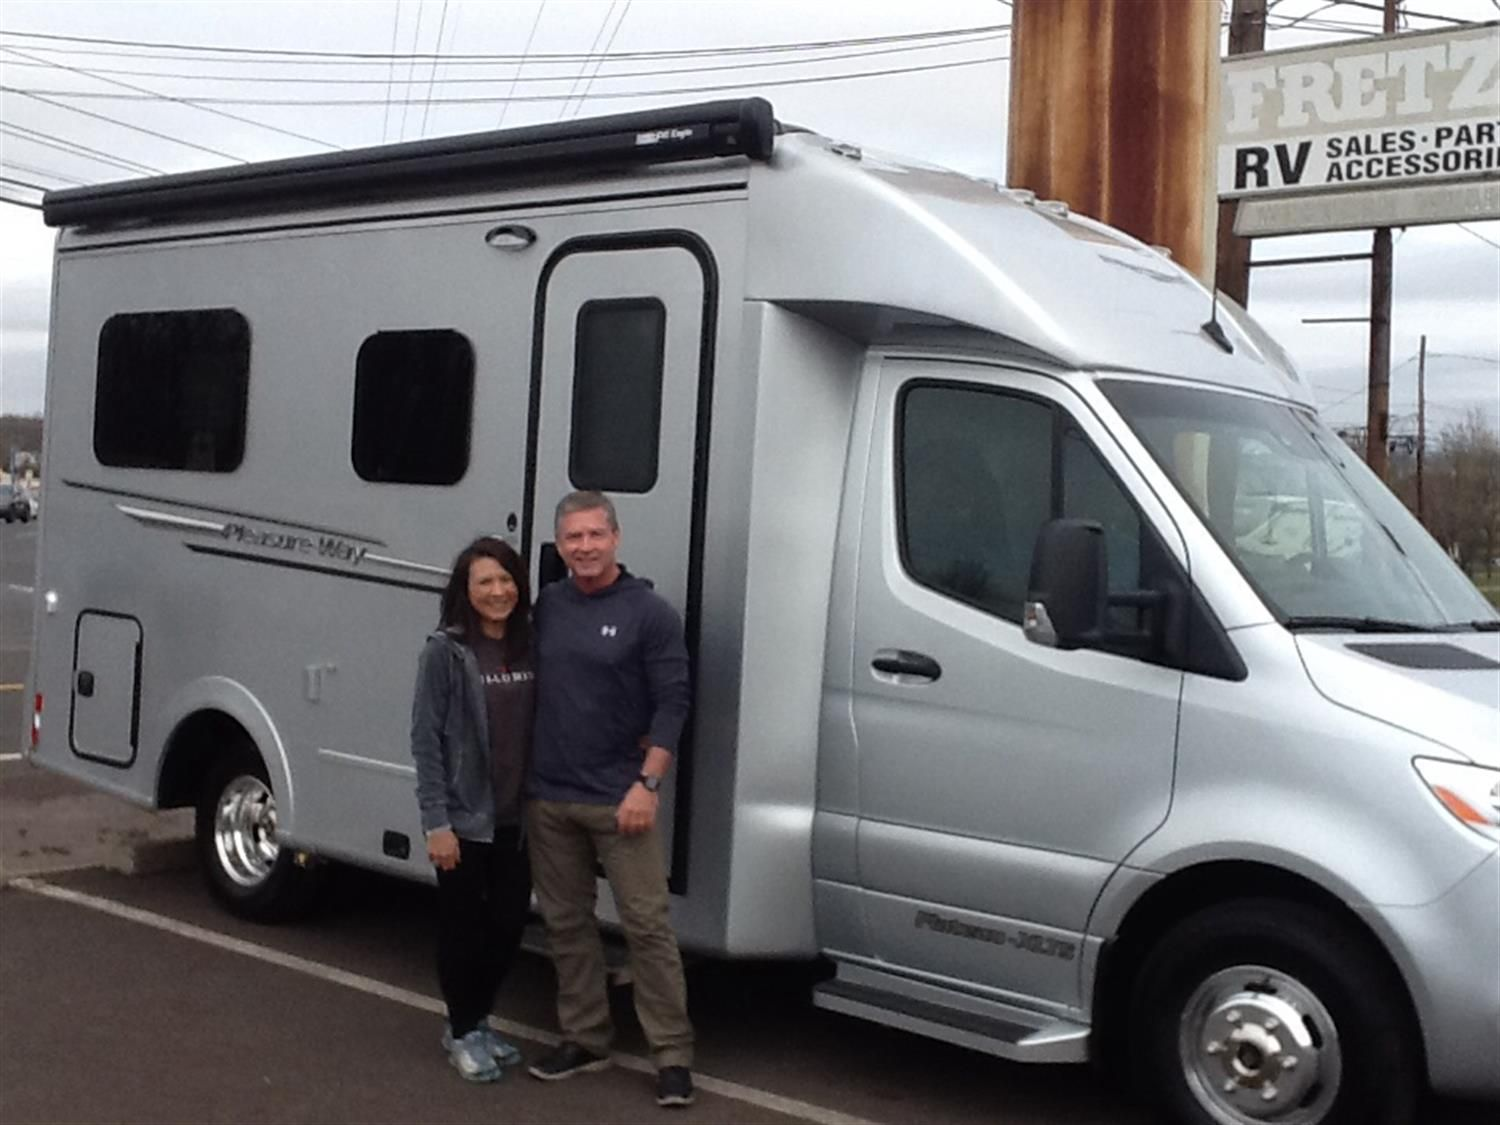 Timothy We Hope You Enjoy Your New 2020 Pleasure Way Plateau Congratulations And Best Wis Pleasure Way Congratulations And Best Wishes Recreational Vehicles